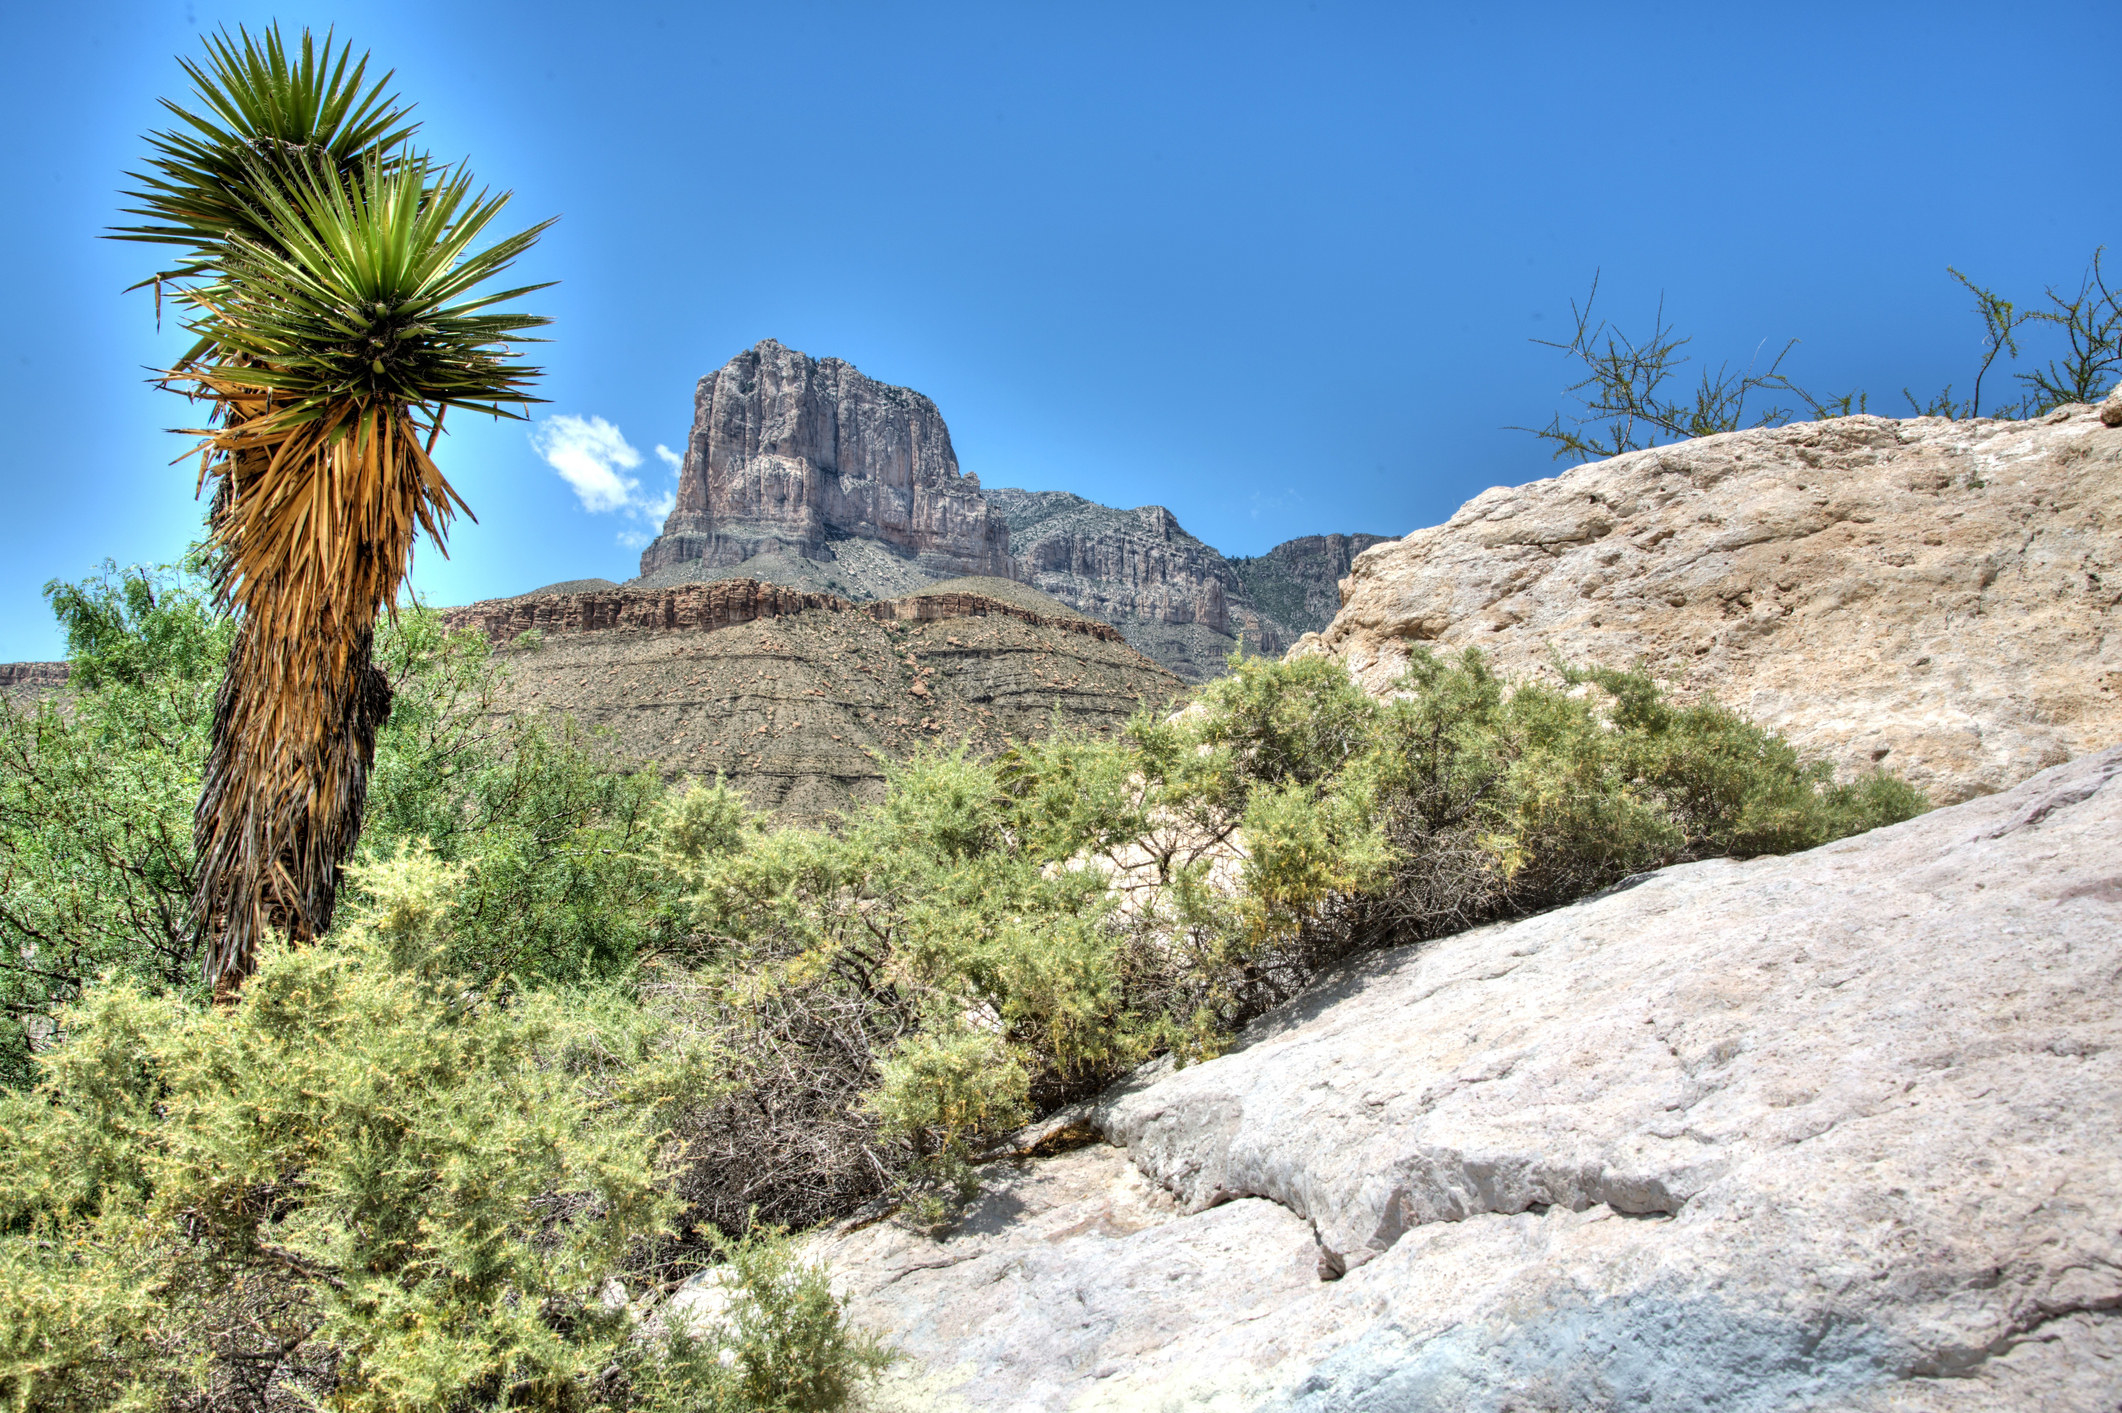 El Capitan, the iconic peak of Guadalupe Mountains National Park, with a lone palm tree standing before it.